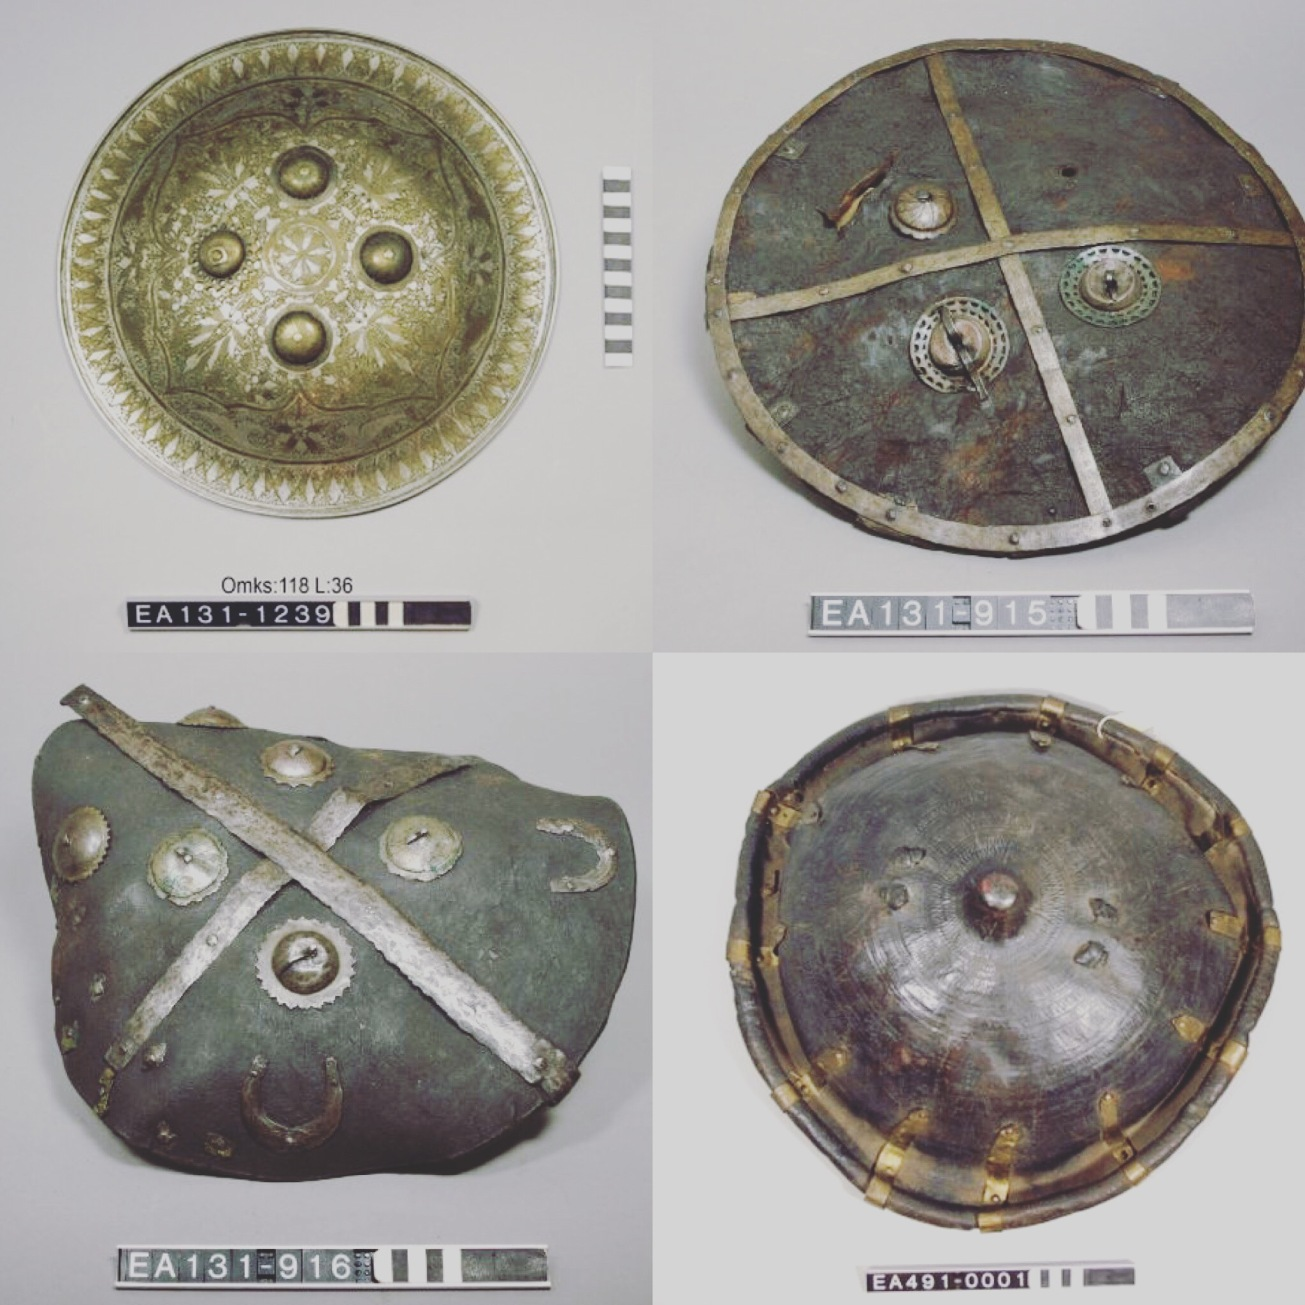 vikings, shields, battle, fight, moesgaard museum, afghanistan, collections, anthropology, ethnography